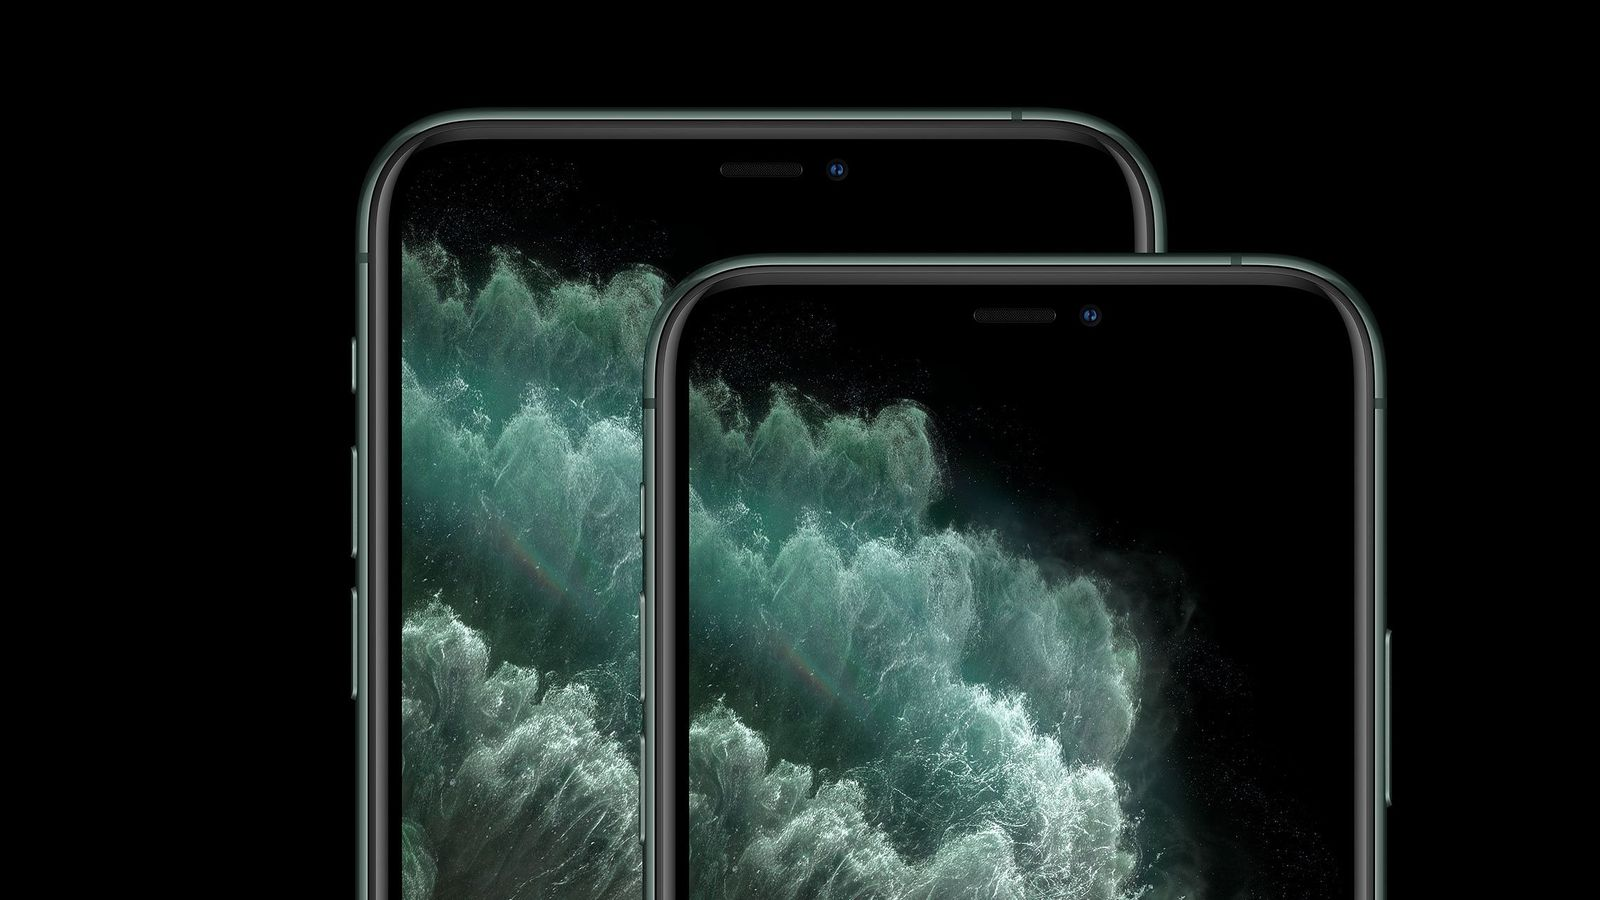 Counterpoint Strong Iphone 11 Demand Driving Growth Of Apple S Marketshare In India Macrumors